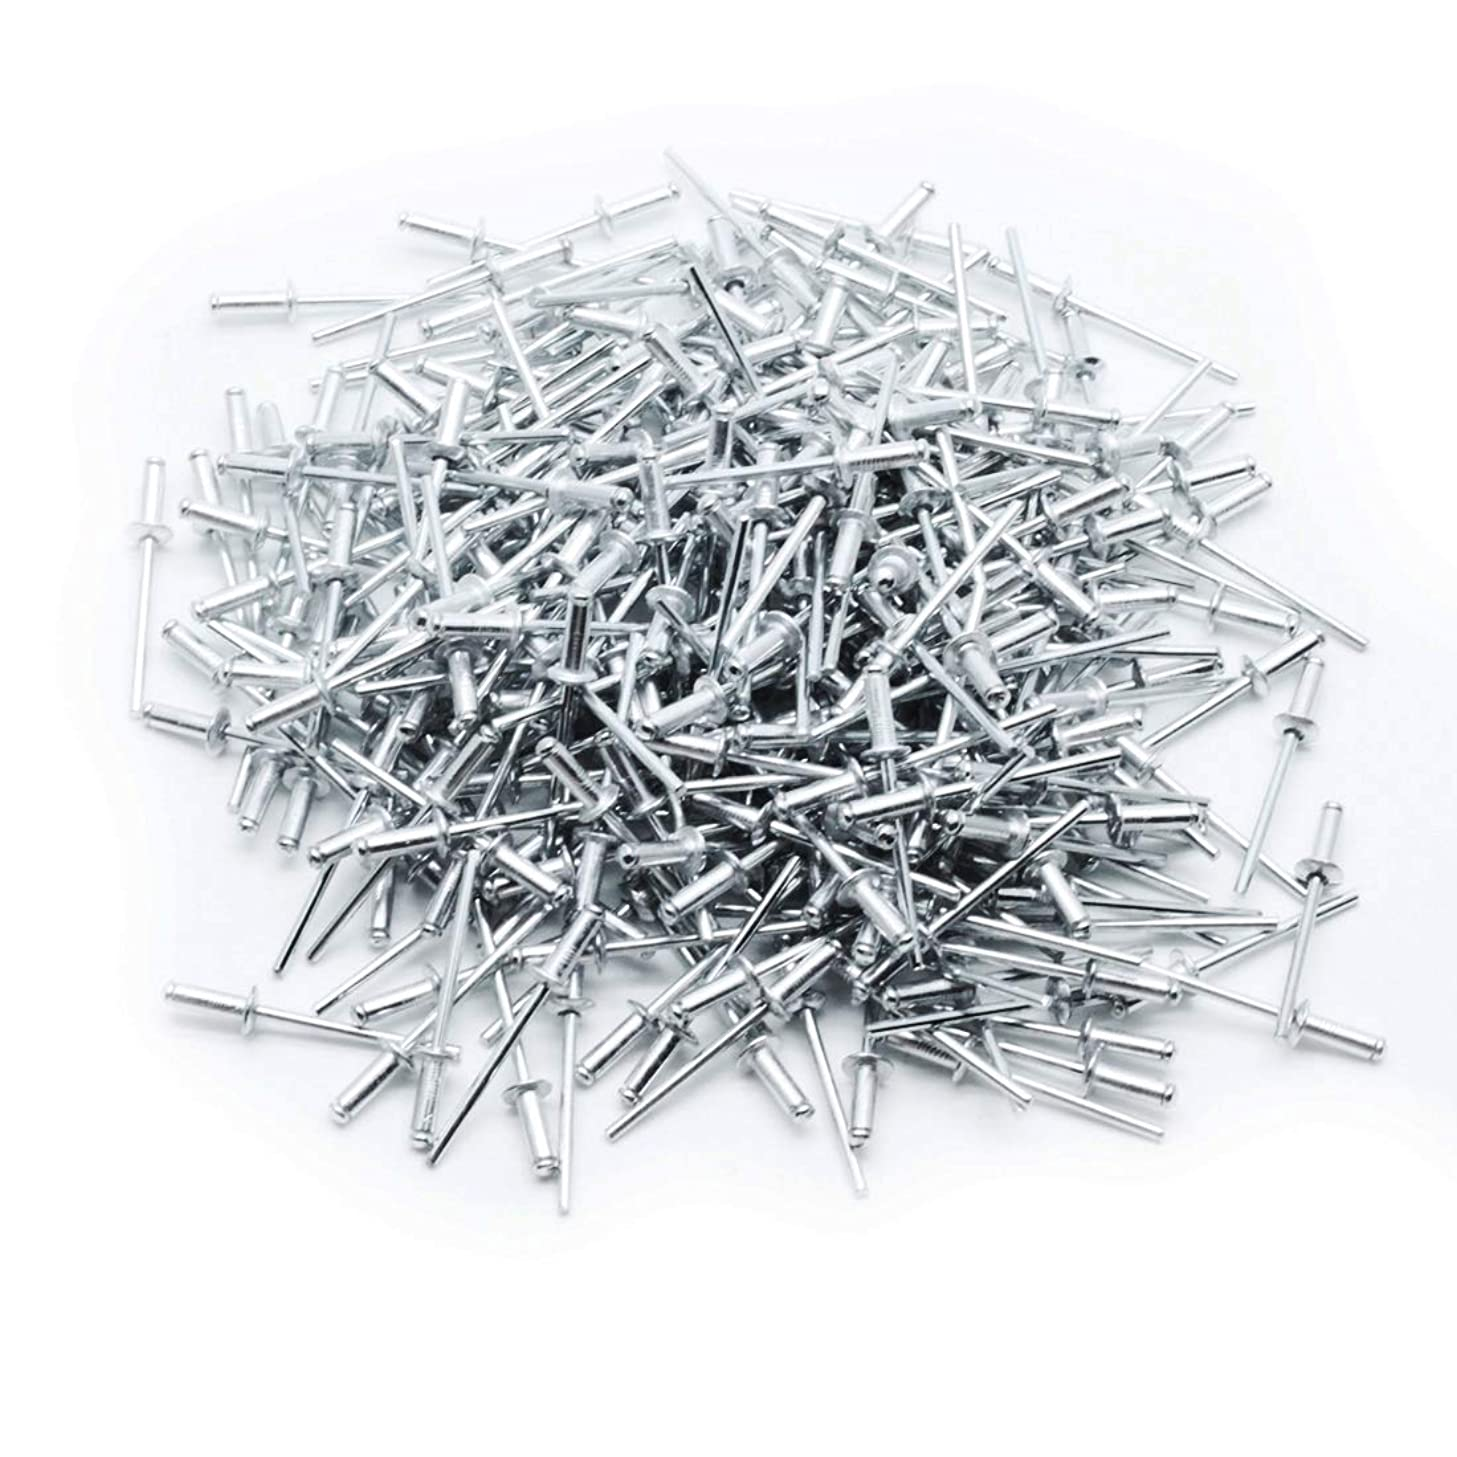 Autoly Steel Rivet 1/8 x 3/8 Inch Blind Rivets by Bolt Dropper, 400-Pieces